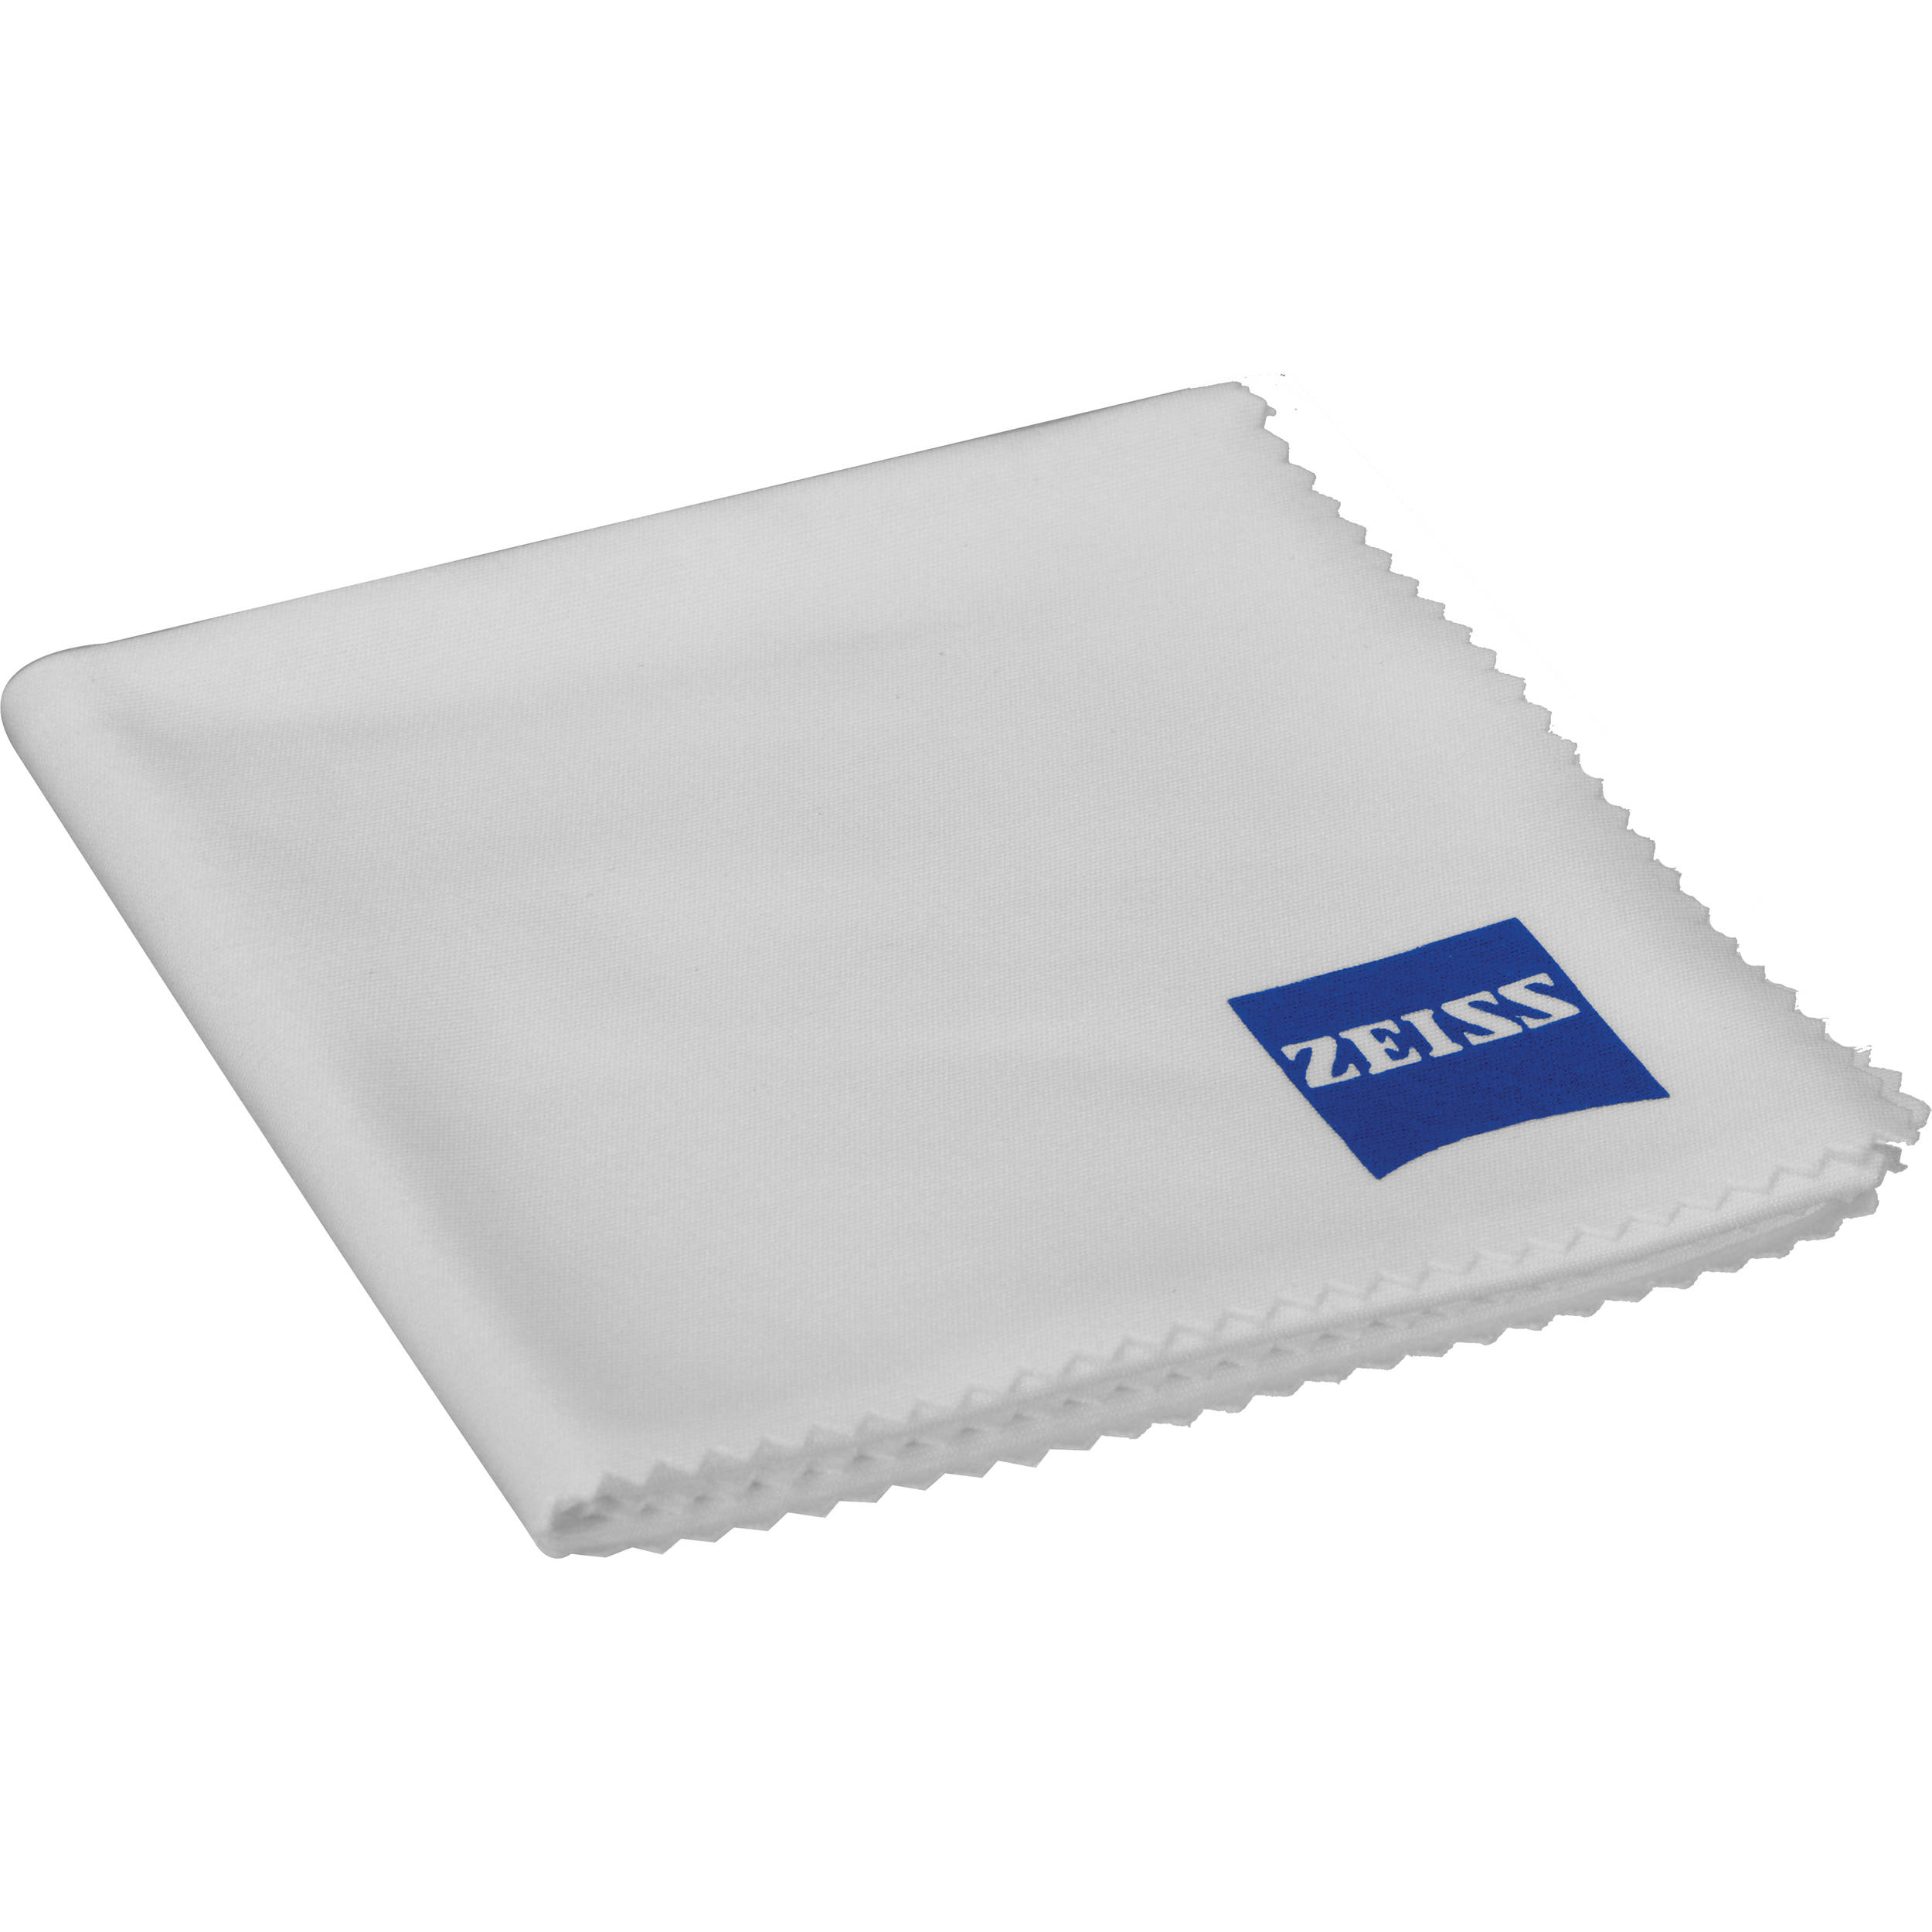 "Zeiss Microfiber Cleaning Cloth: ZEISS Jumbo Microfiber Cloth (12 X 16"") 2127538 B&H Photo"